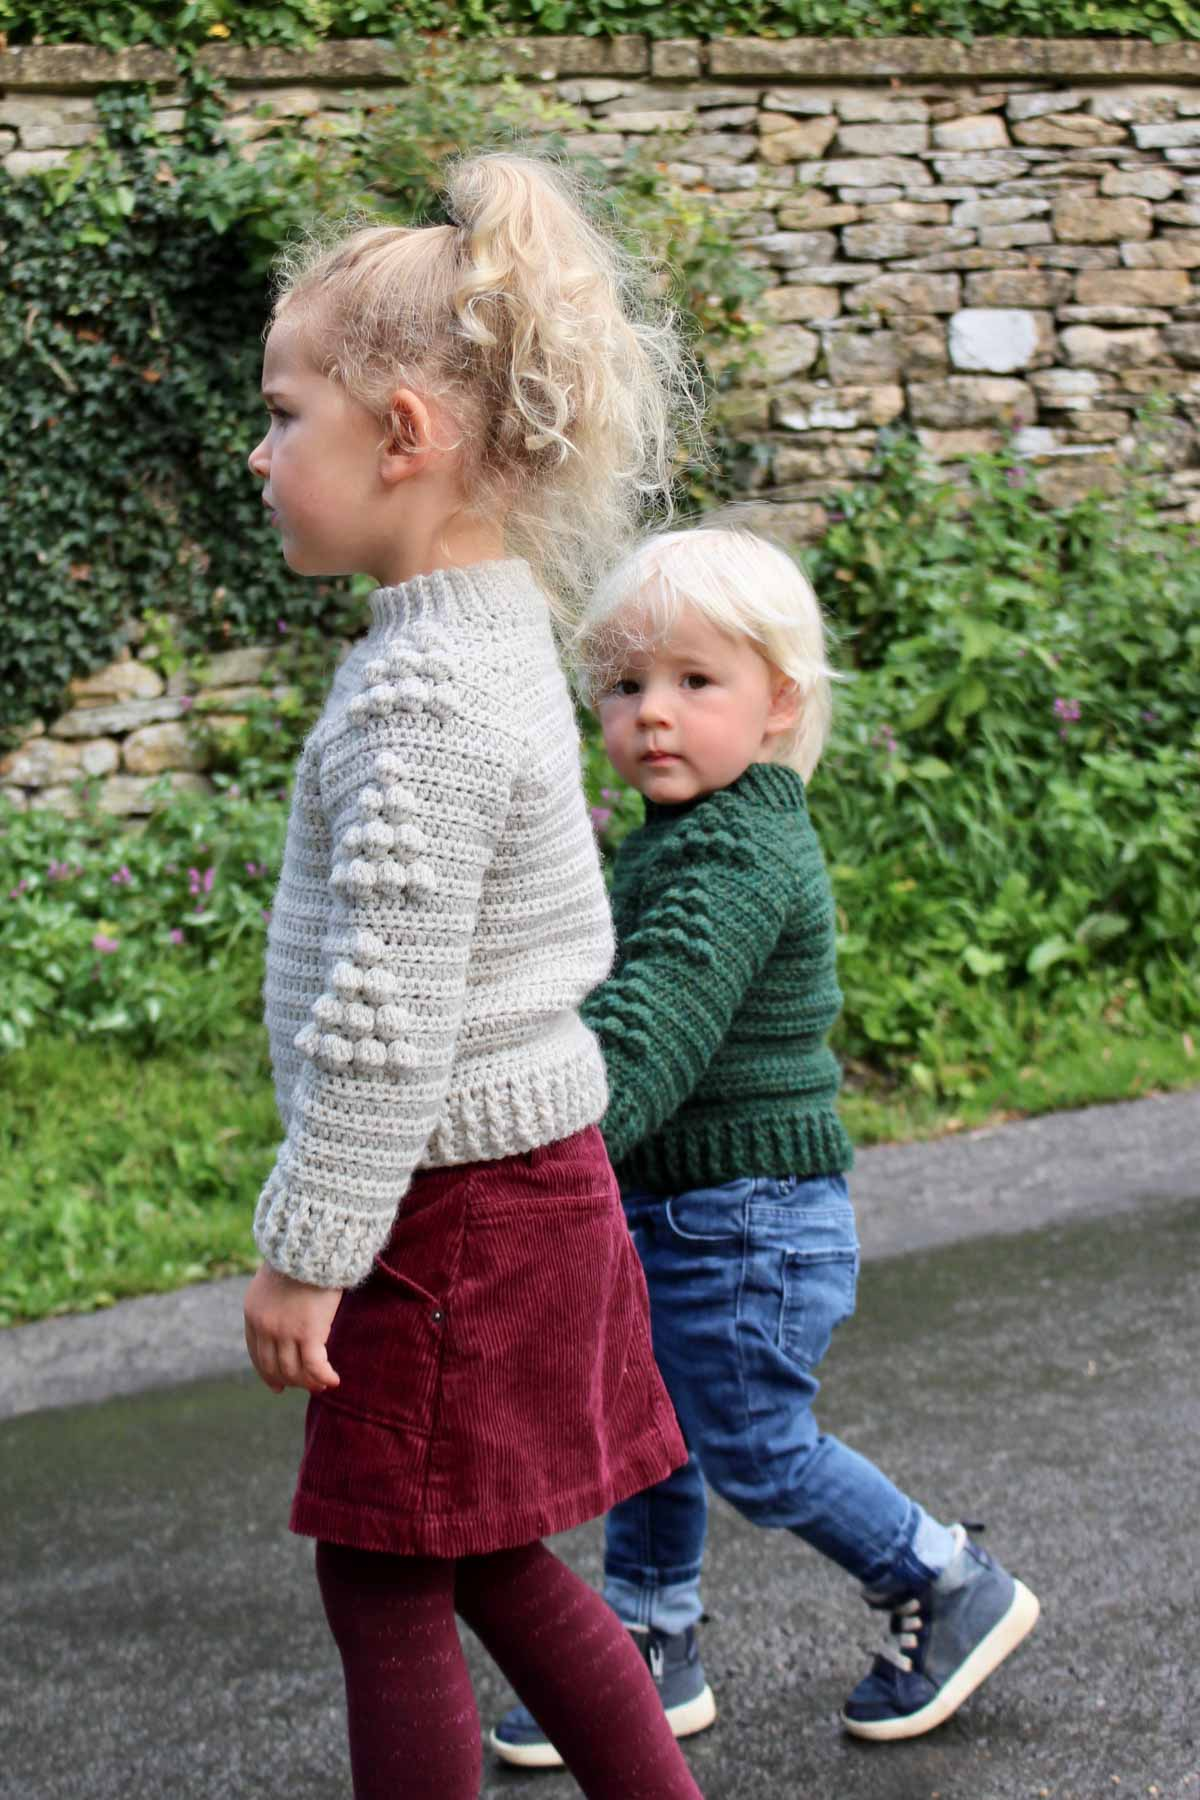 is raglan crochet baby sweater is equal parts cute and cozy--a modern take on a classic children's pullover sweater. Get the free pattern in sizes 6 months-10 years featuring Lion Brand Wool-Ease.